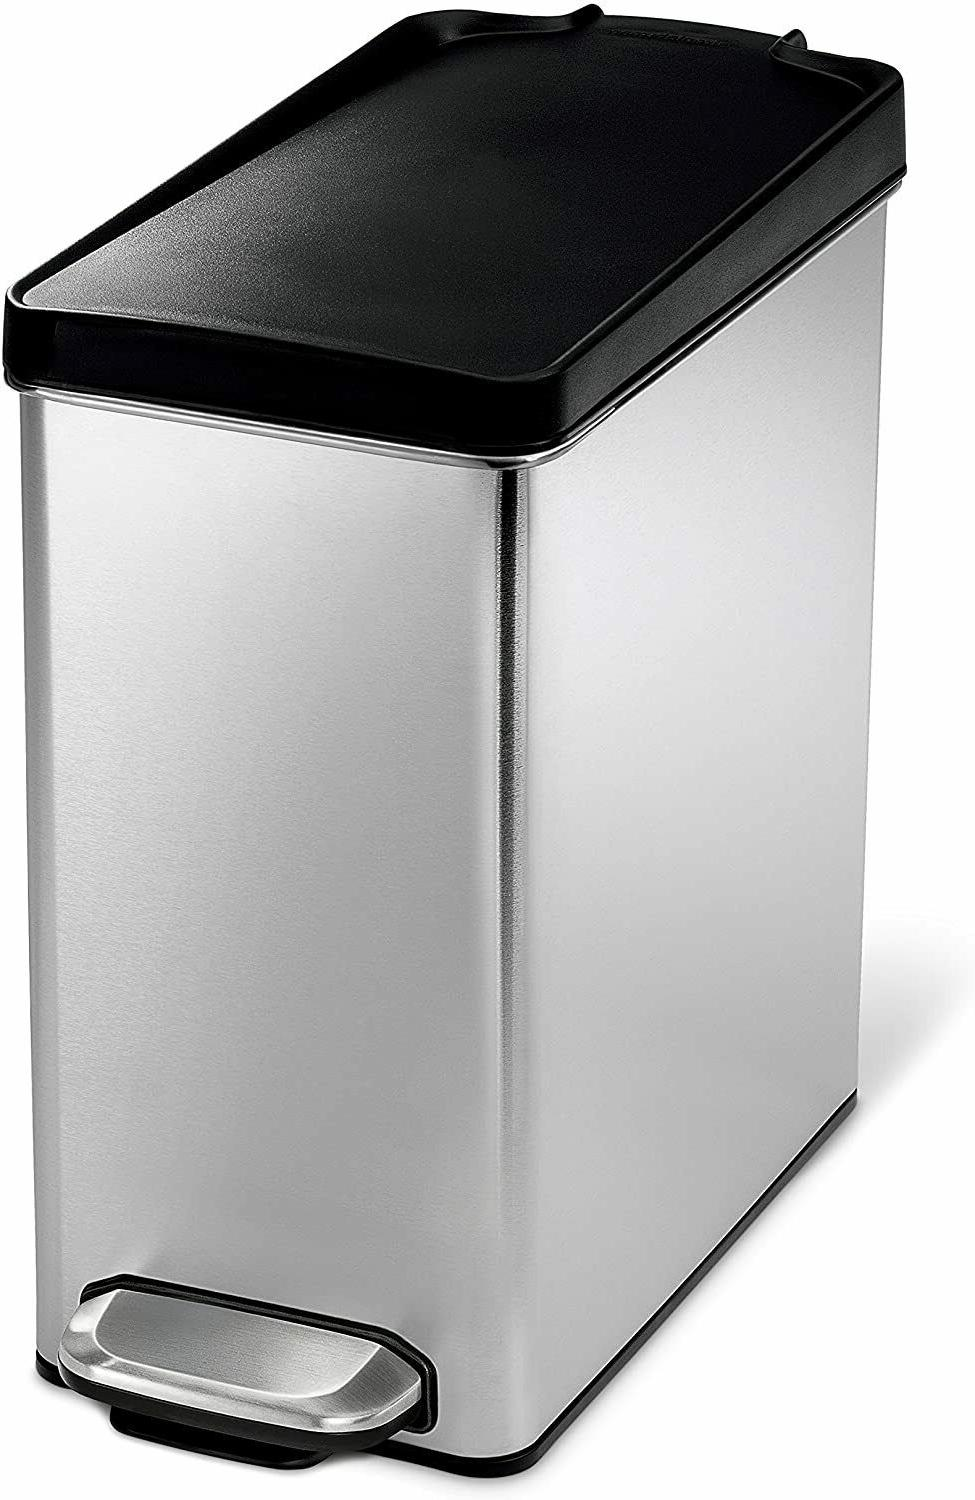 Home Trash Can Kitchen Garbage Plastic